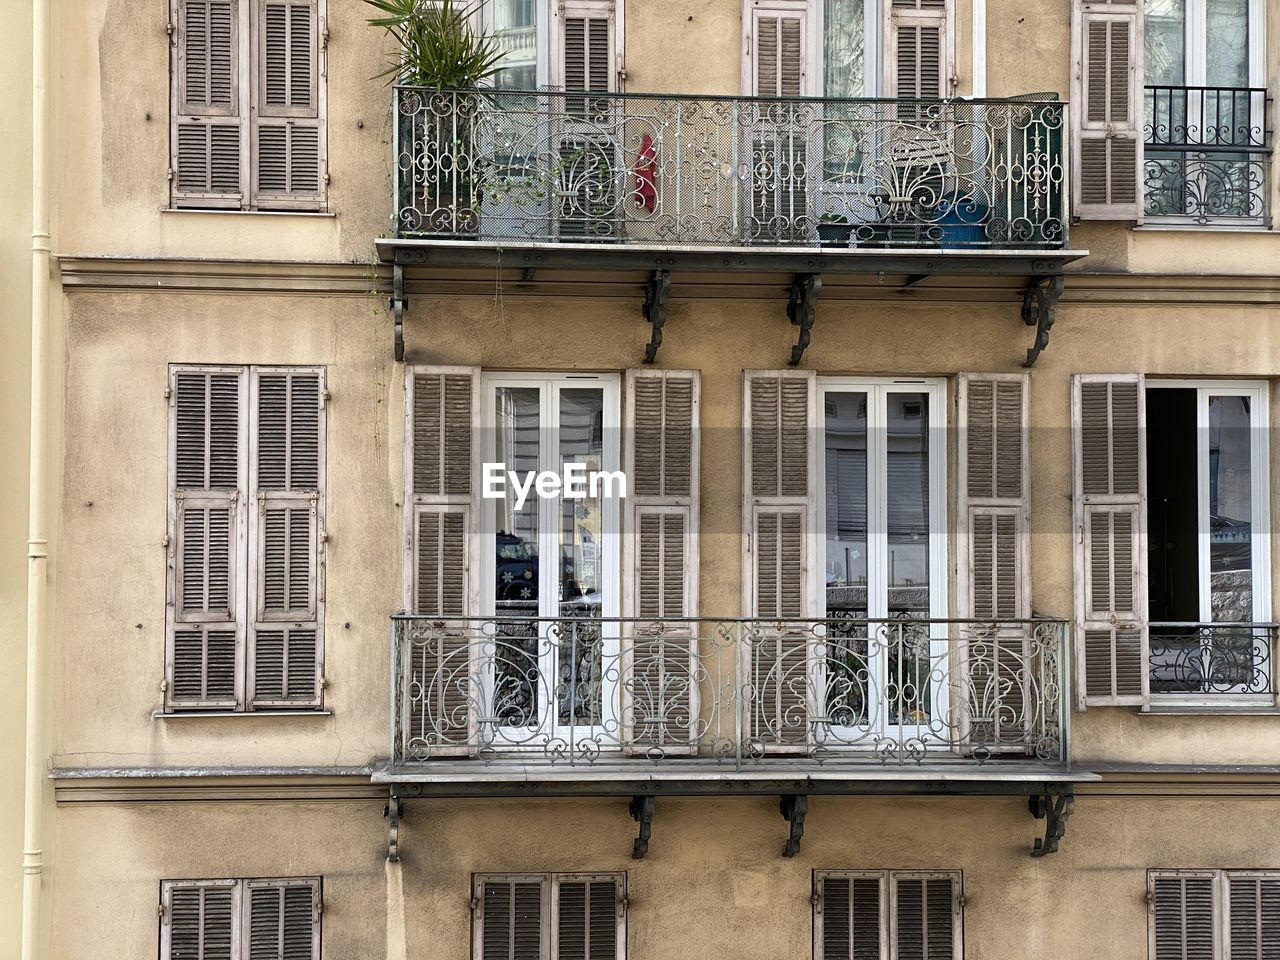 window, building exterior, architecture, built structure, building, no people, day, residential district, glass - material, full frame, low angle view, outdoors, balcony, backgrounds, city, reflection, townhouse, apartment, shutter, side by side